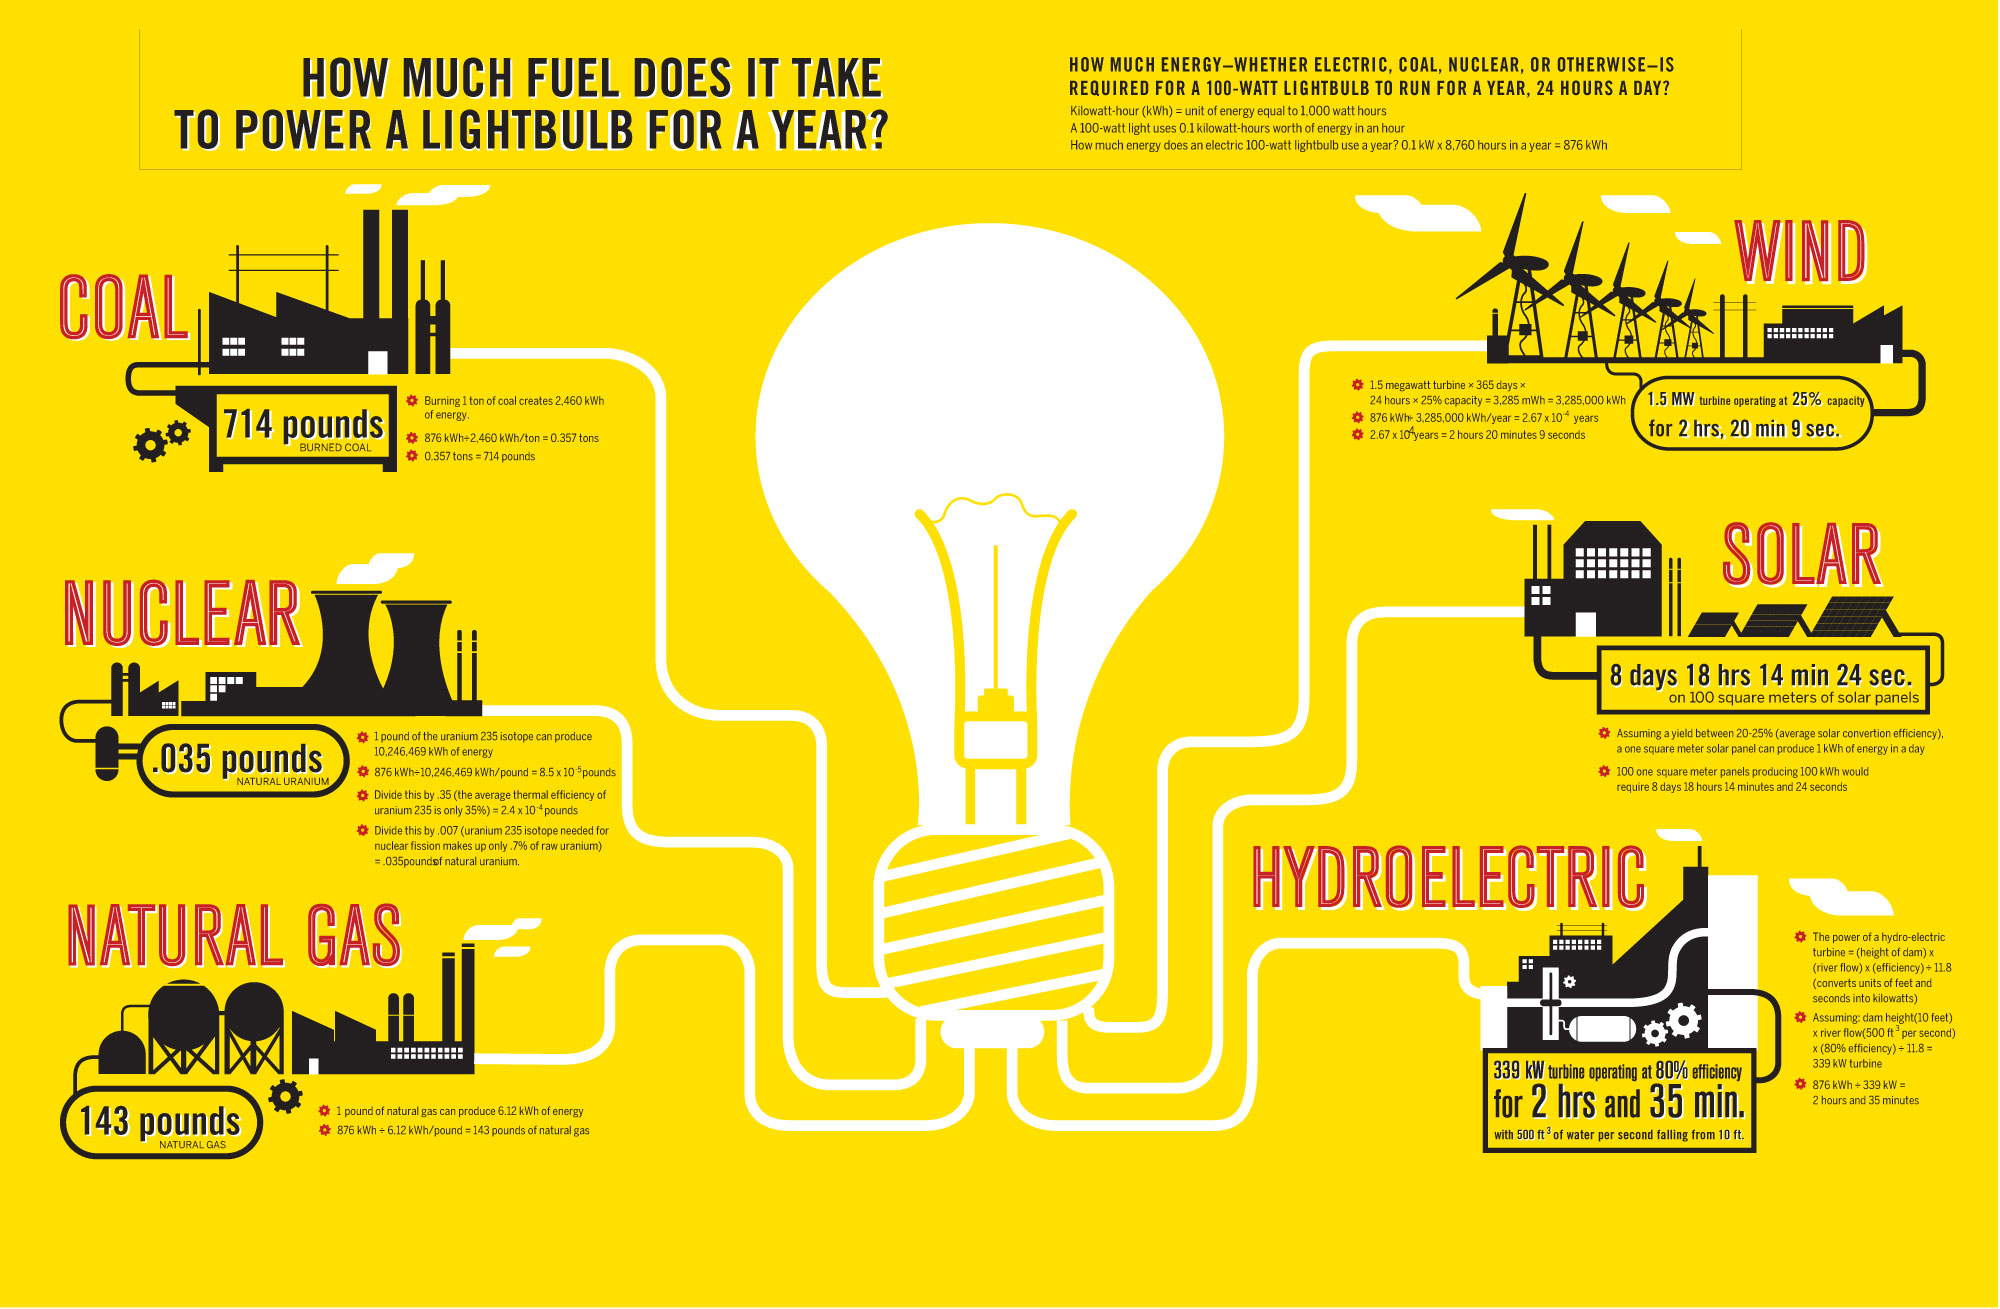 How much energy to power a lightbulb infographic